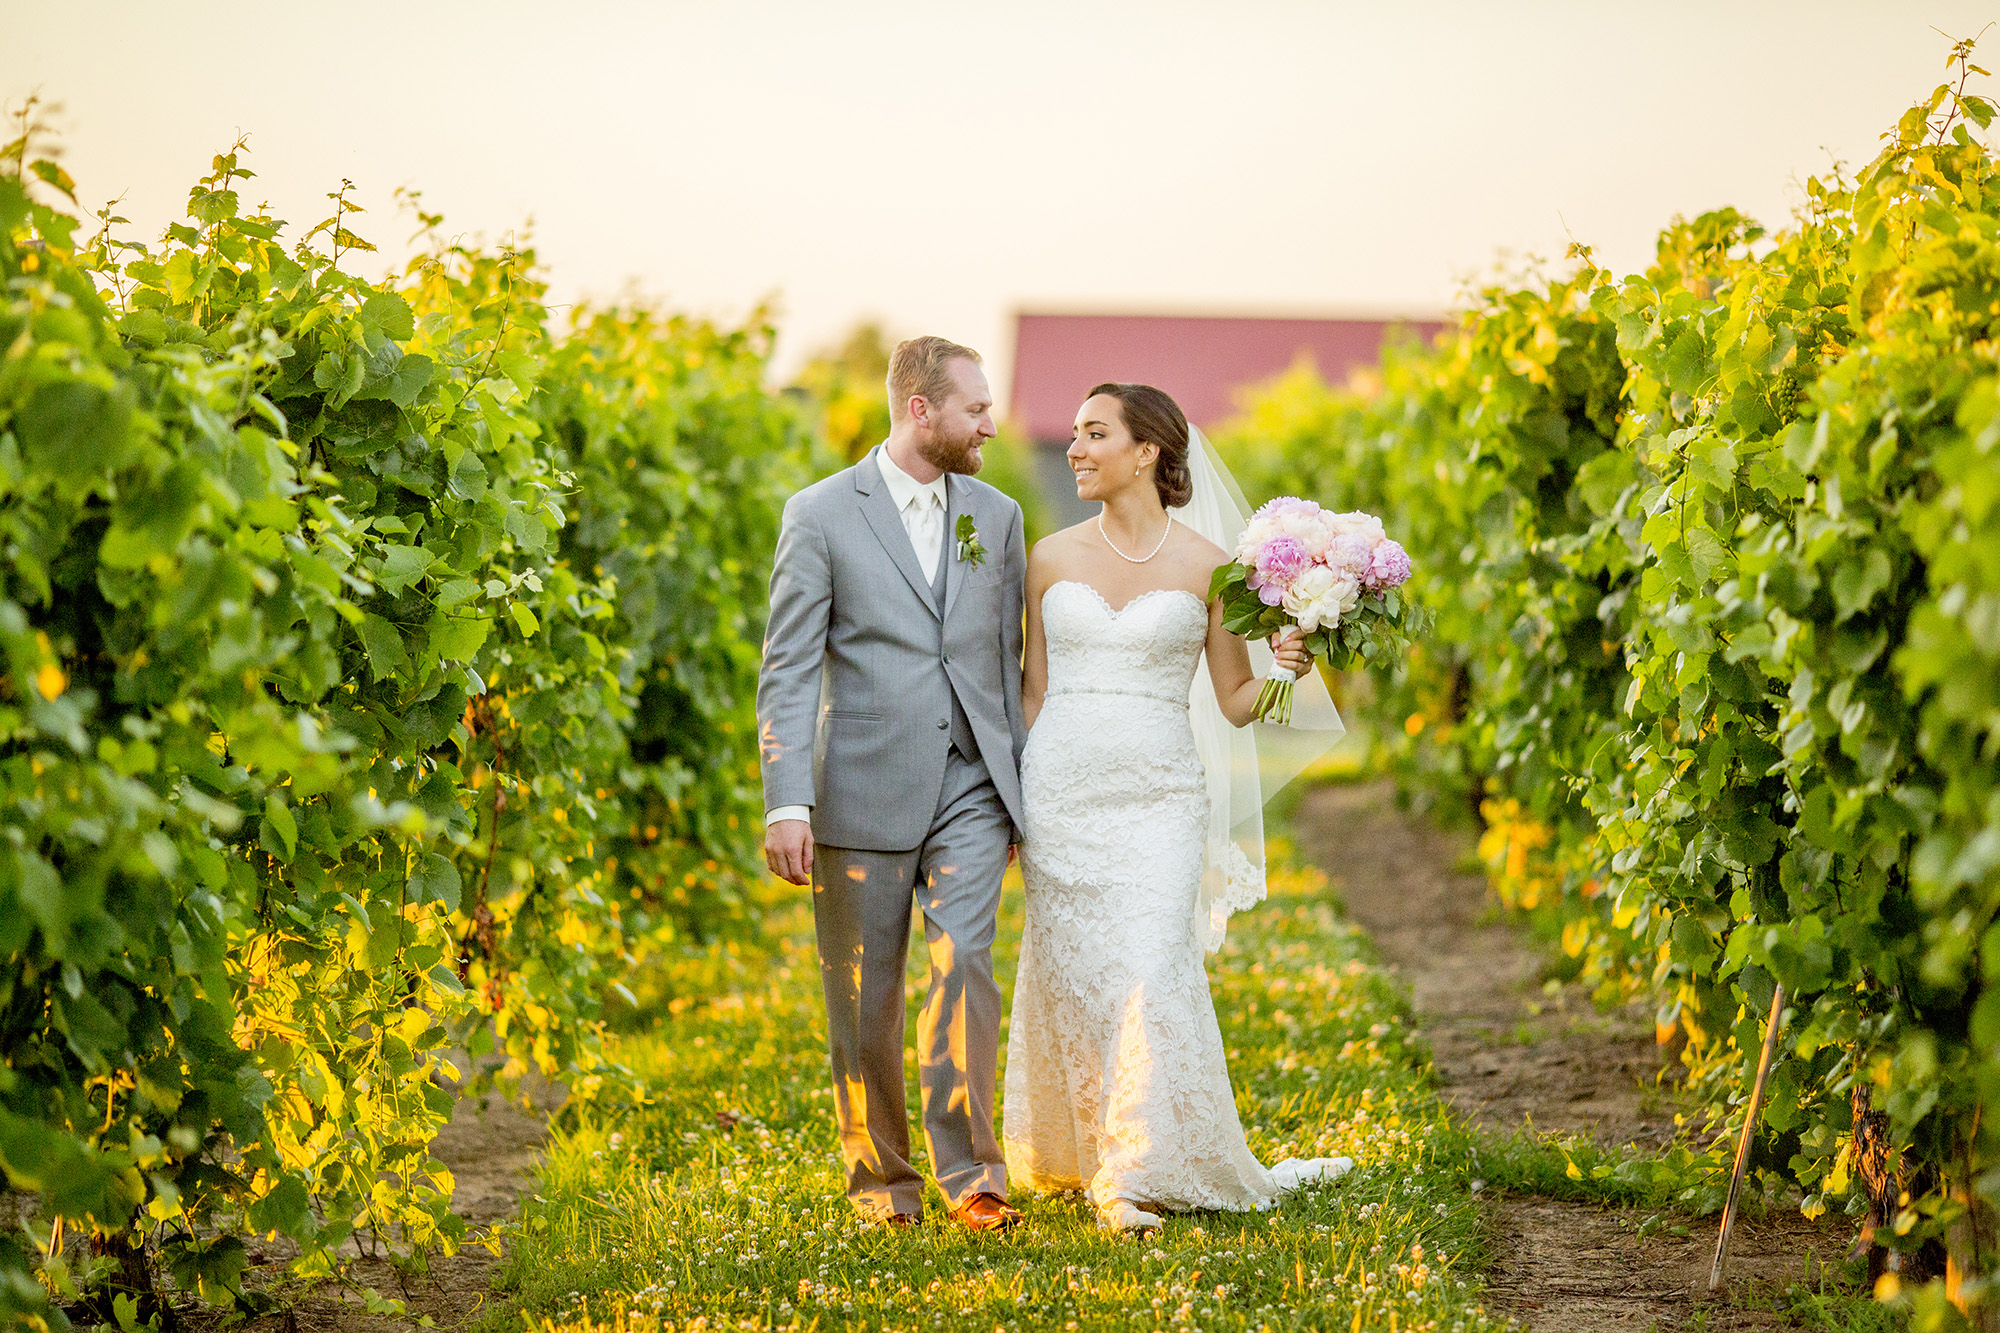 Seriously_Sabrina_Photography_Lexington_Kentucky_Talon_Winery_Wedding_Kjellsen165.jpg